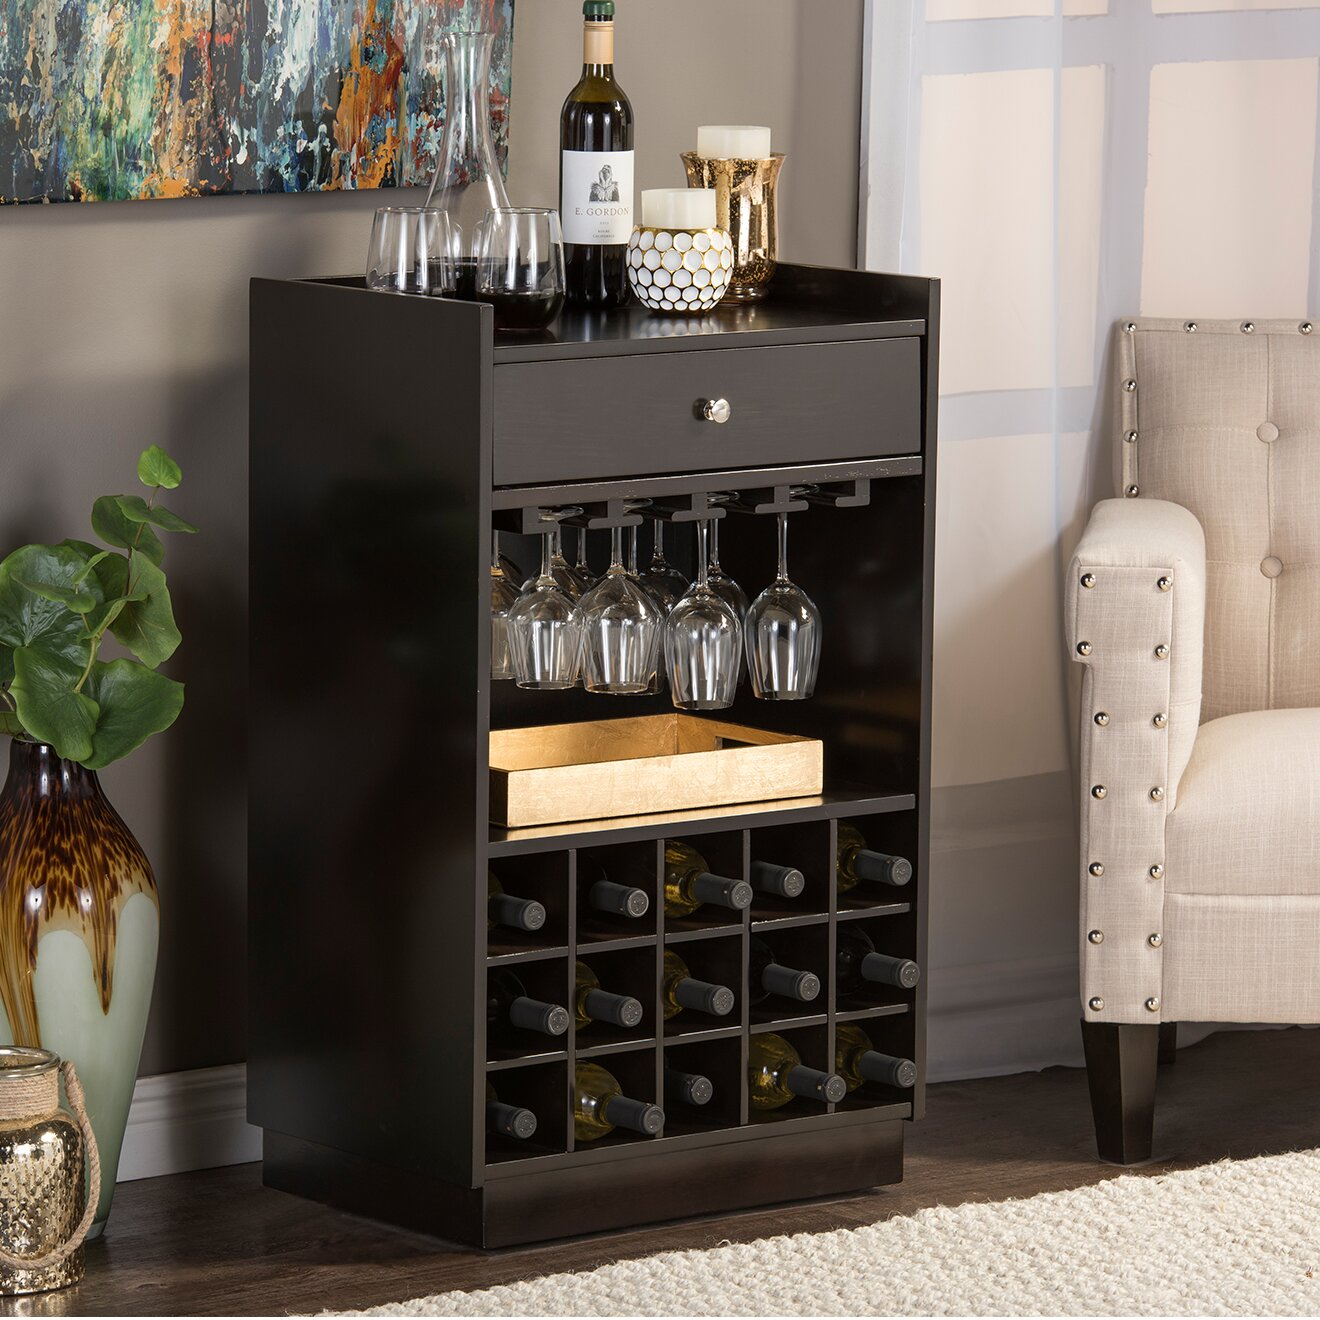 15 Majestic Contemporary Home Bar Designs For Inspiration: Wholesale Interiors Baxton Studio 15 Bottle Tabletop Wine